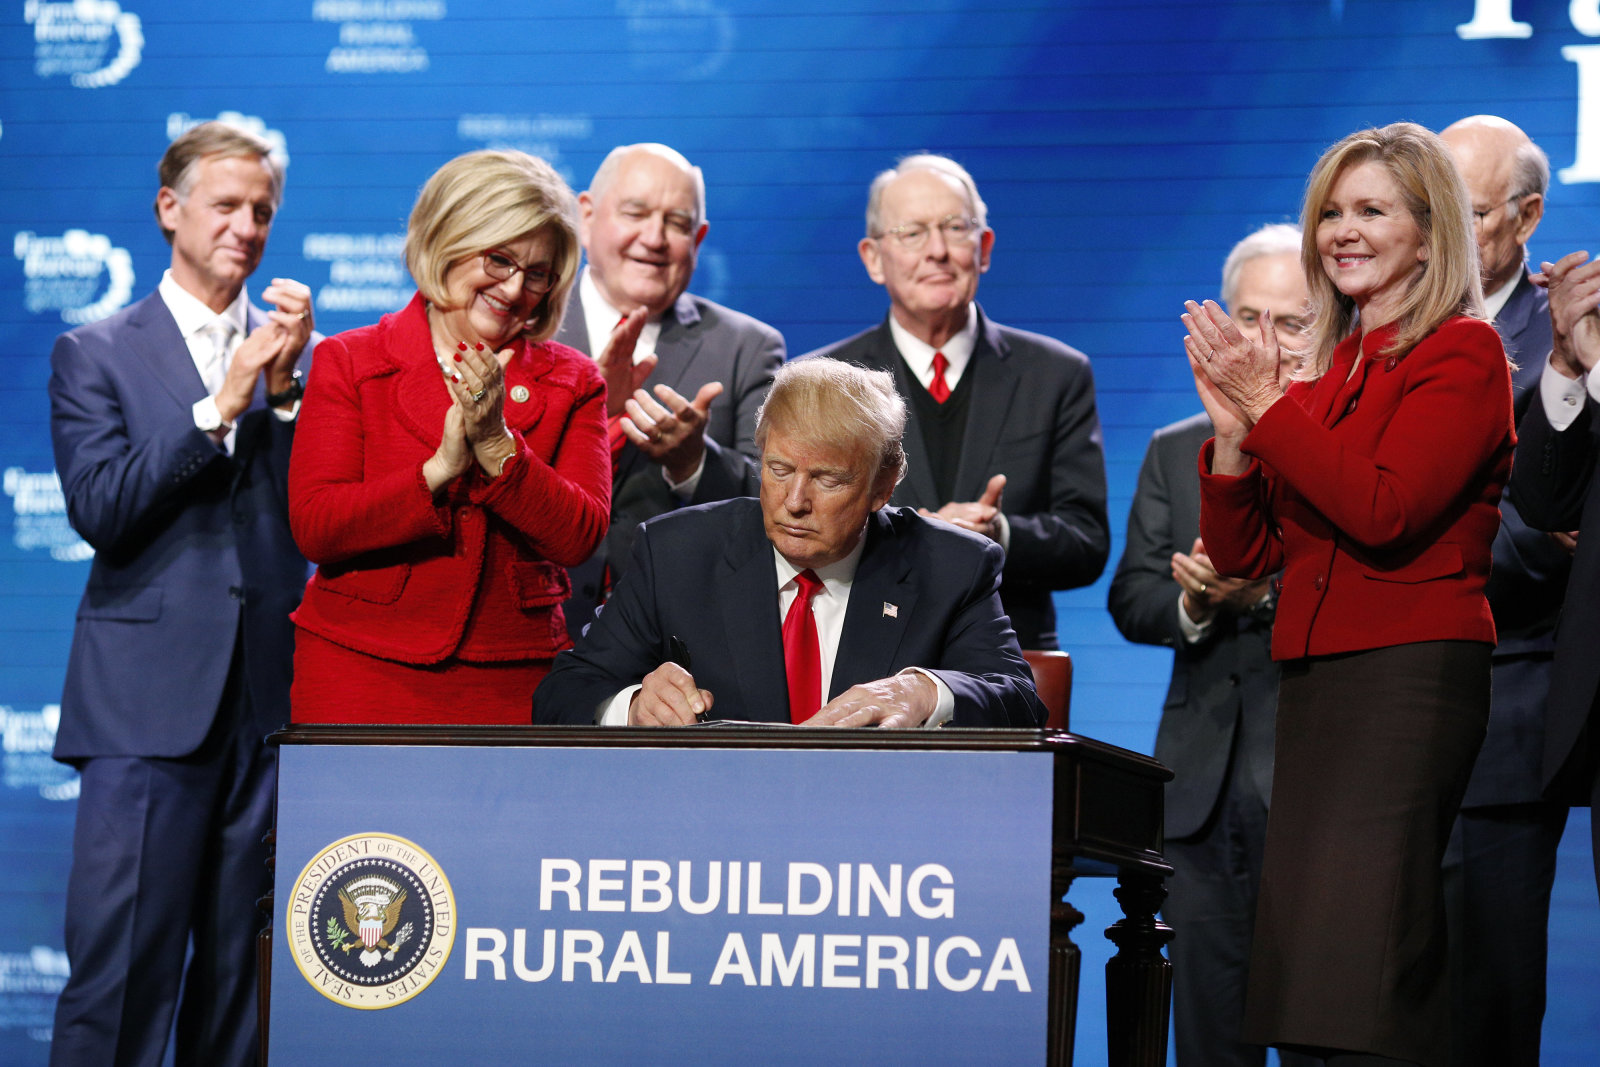 President Trump Speaks At The Annual American Farm Bureau Federation Conference